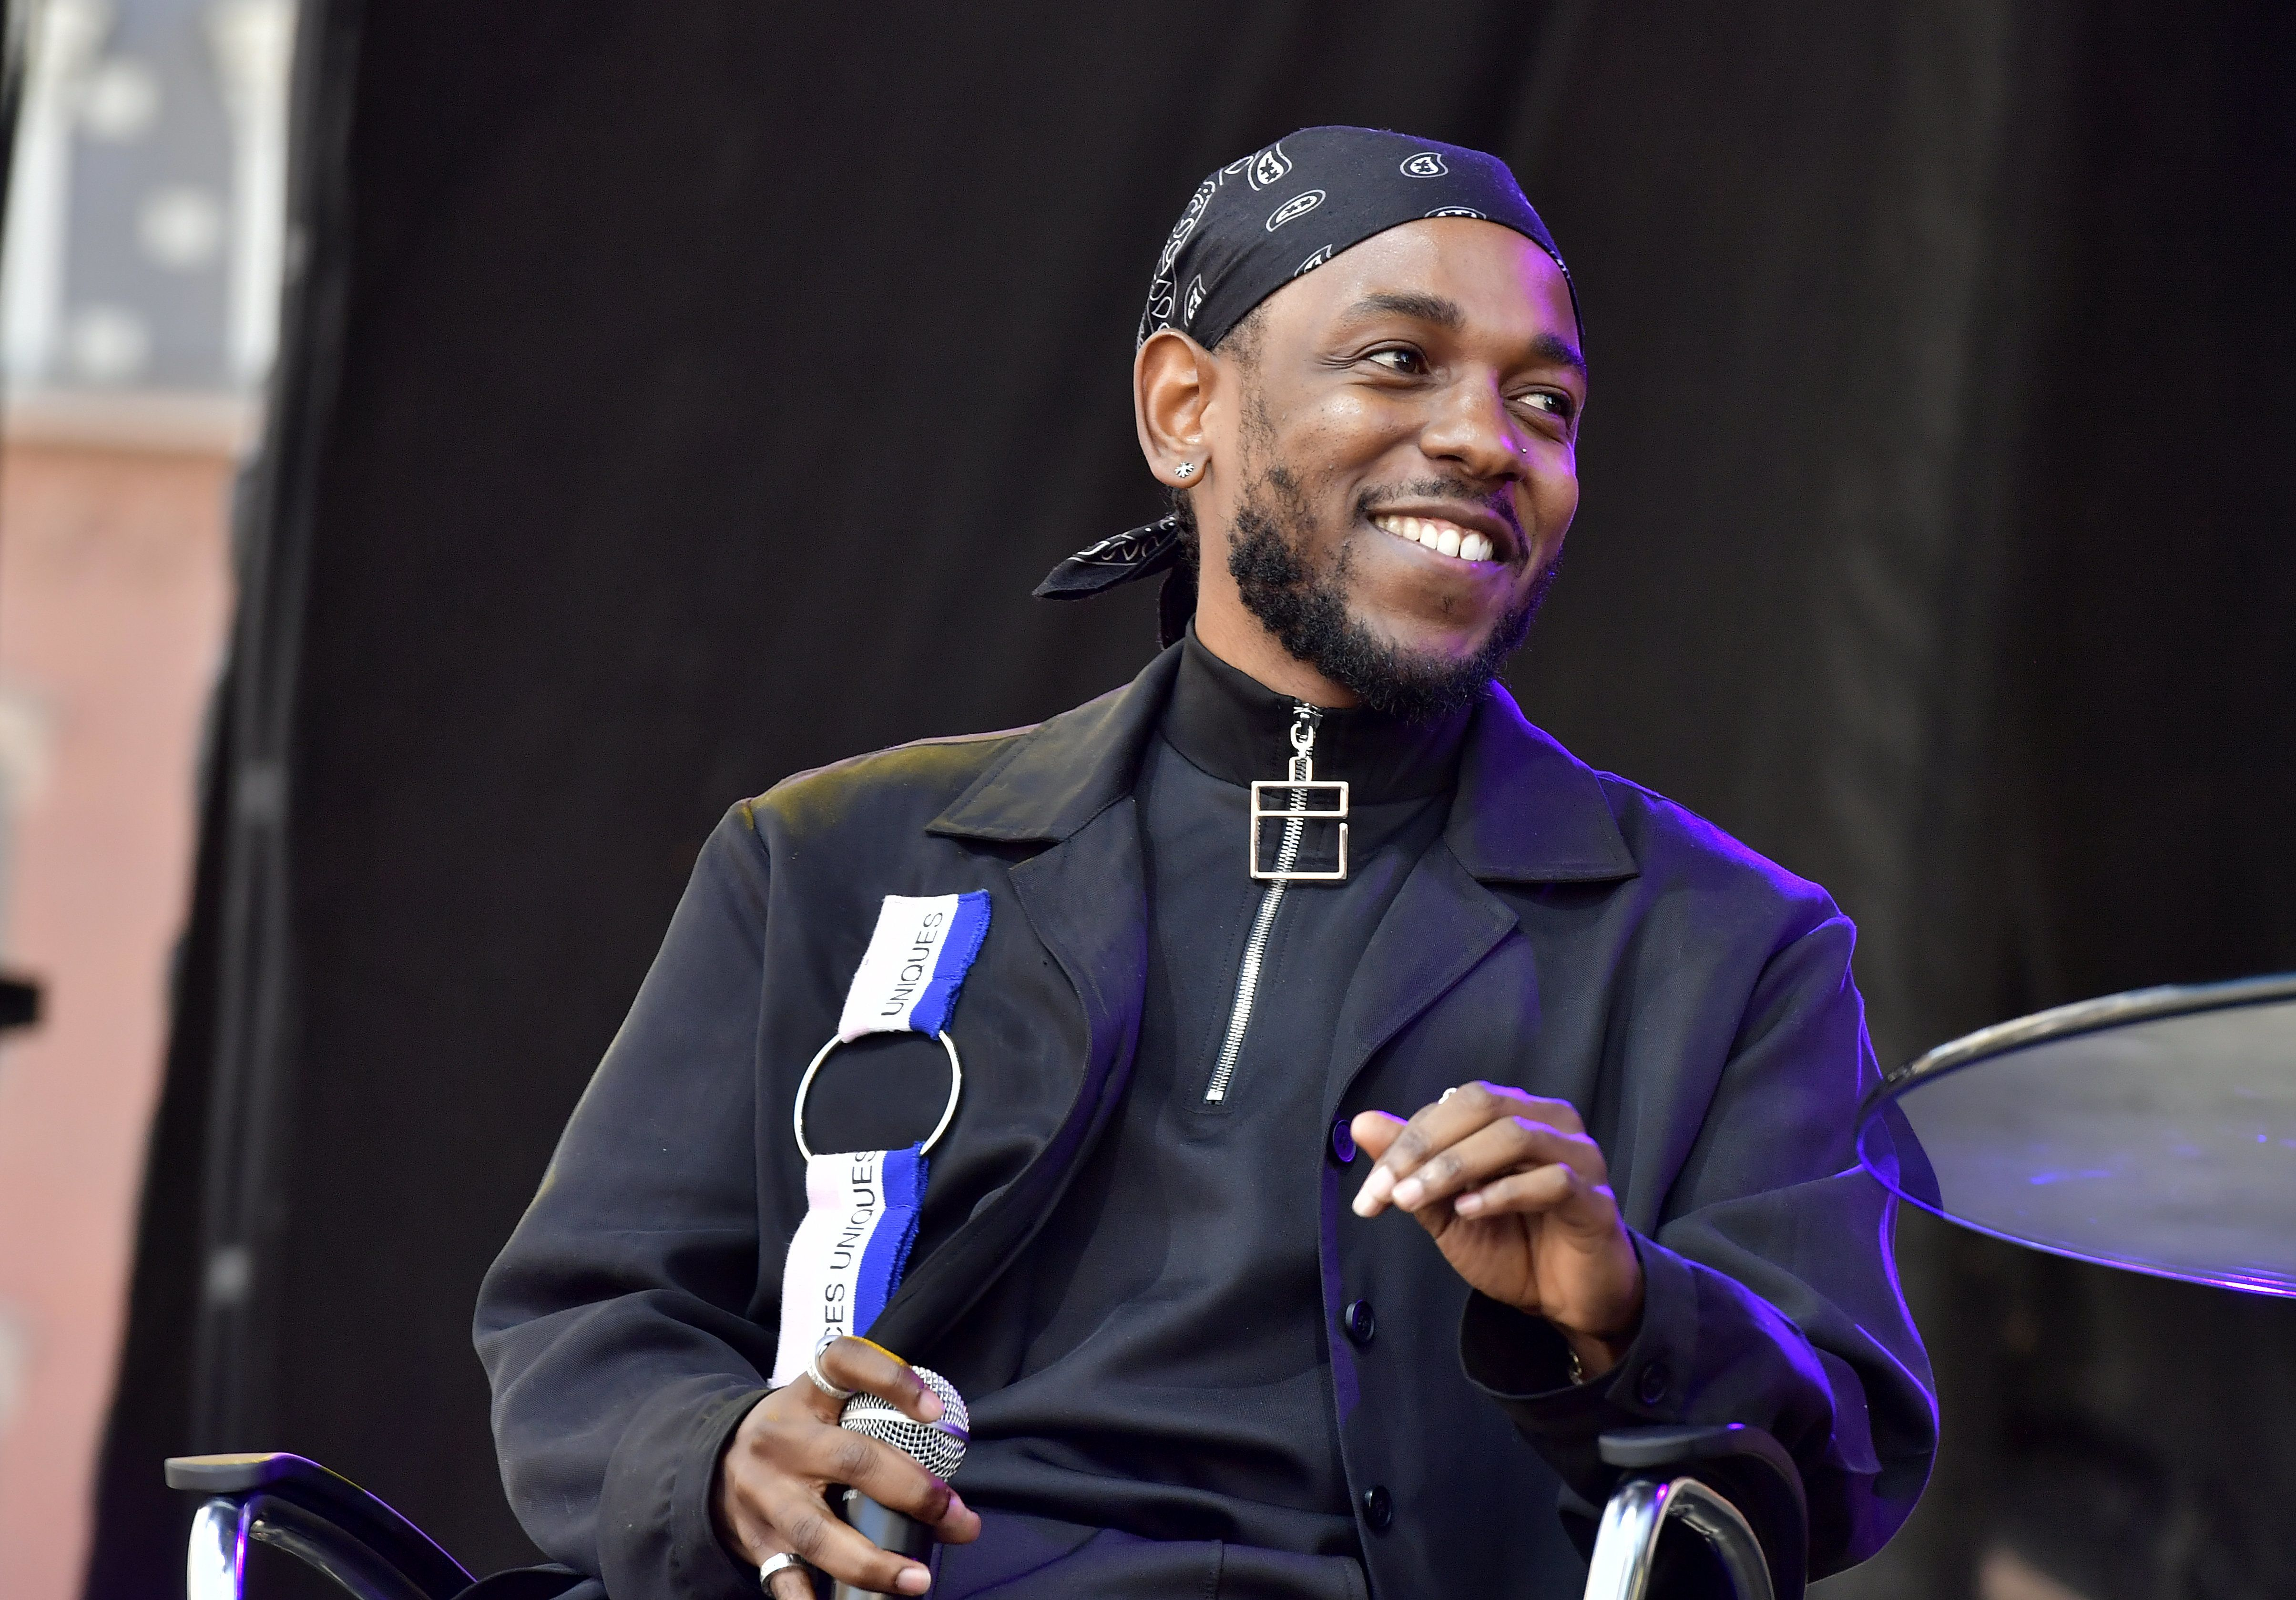 BOSTON, MA - OCTOBER 03:  Rapper Kendrick Lamar is interviewed by Forbes Magazine Senior Editor Zack O'Malley Greenburg at the 2017 Forbes Under 30 Summit on October 3, 2017 in Boston, Massachusetts.  (Photo by Paul Marotta/Getty Images)